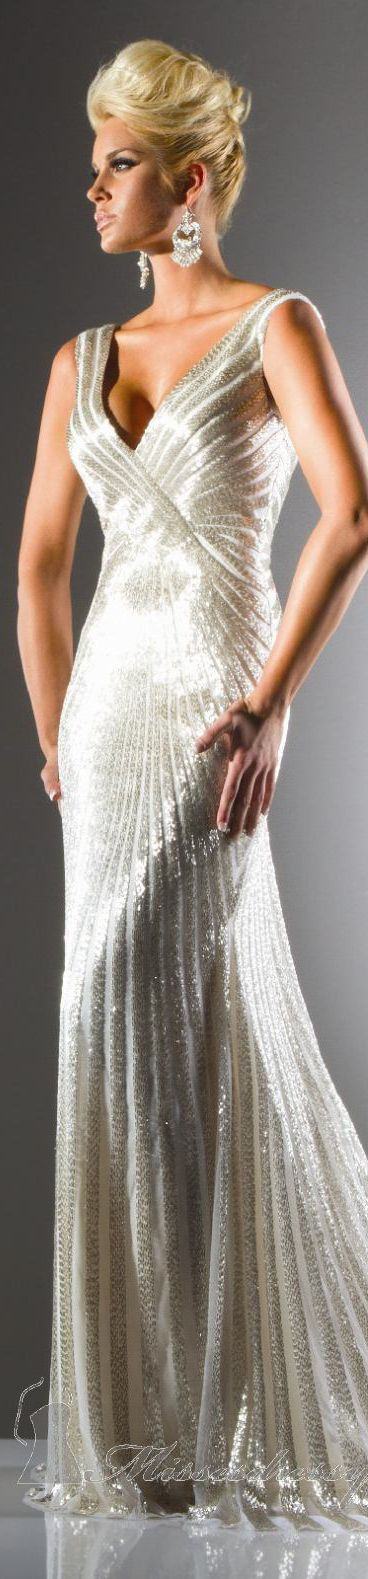 Tony Bowls Collections Formal dress #long #elegant #dress/reminds me of the dress Marilyn Monroe wore while singing happy birthday to the president